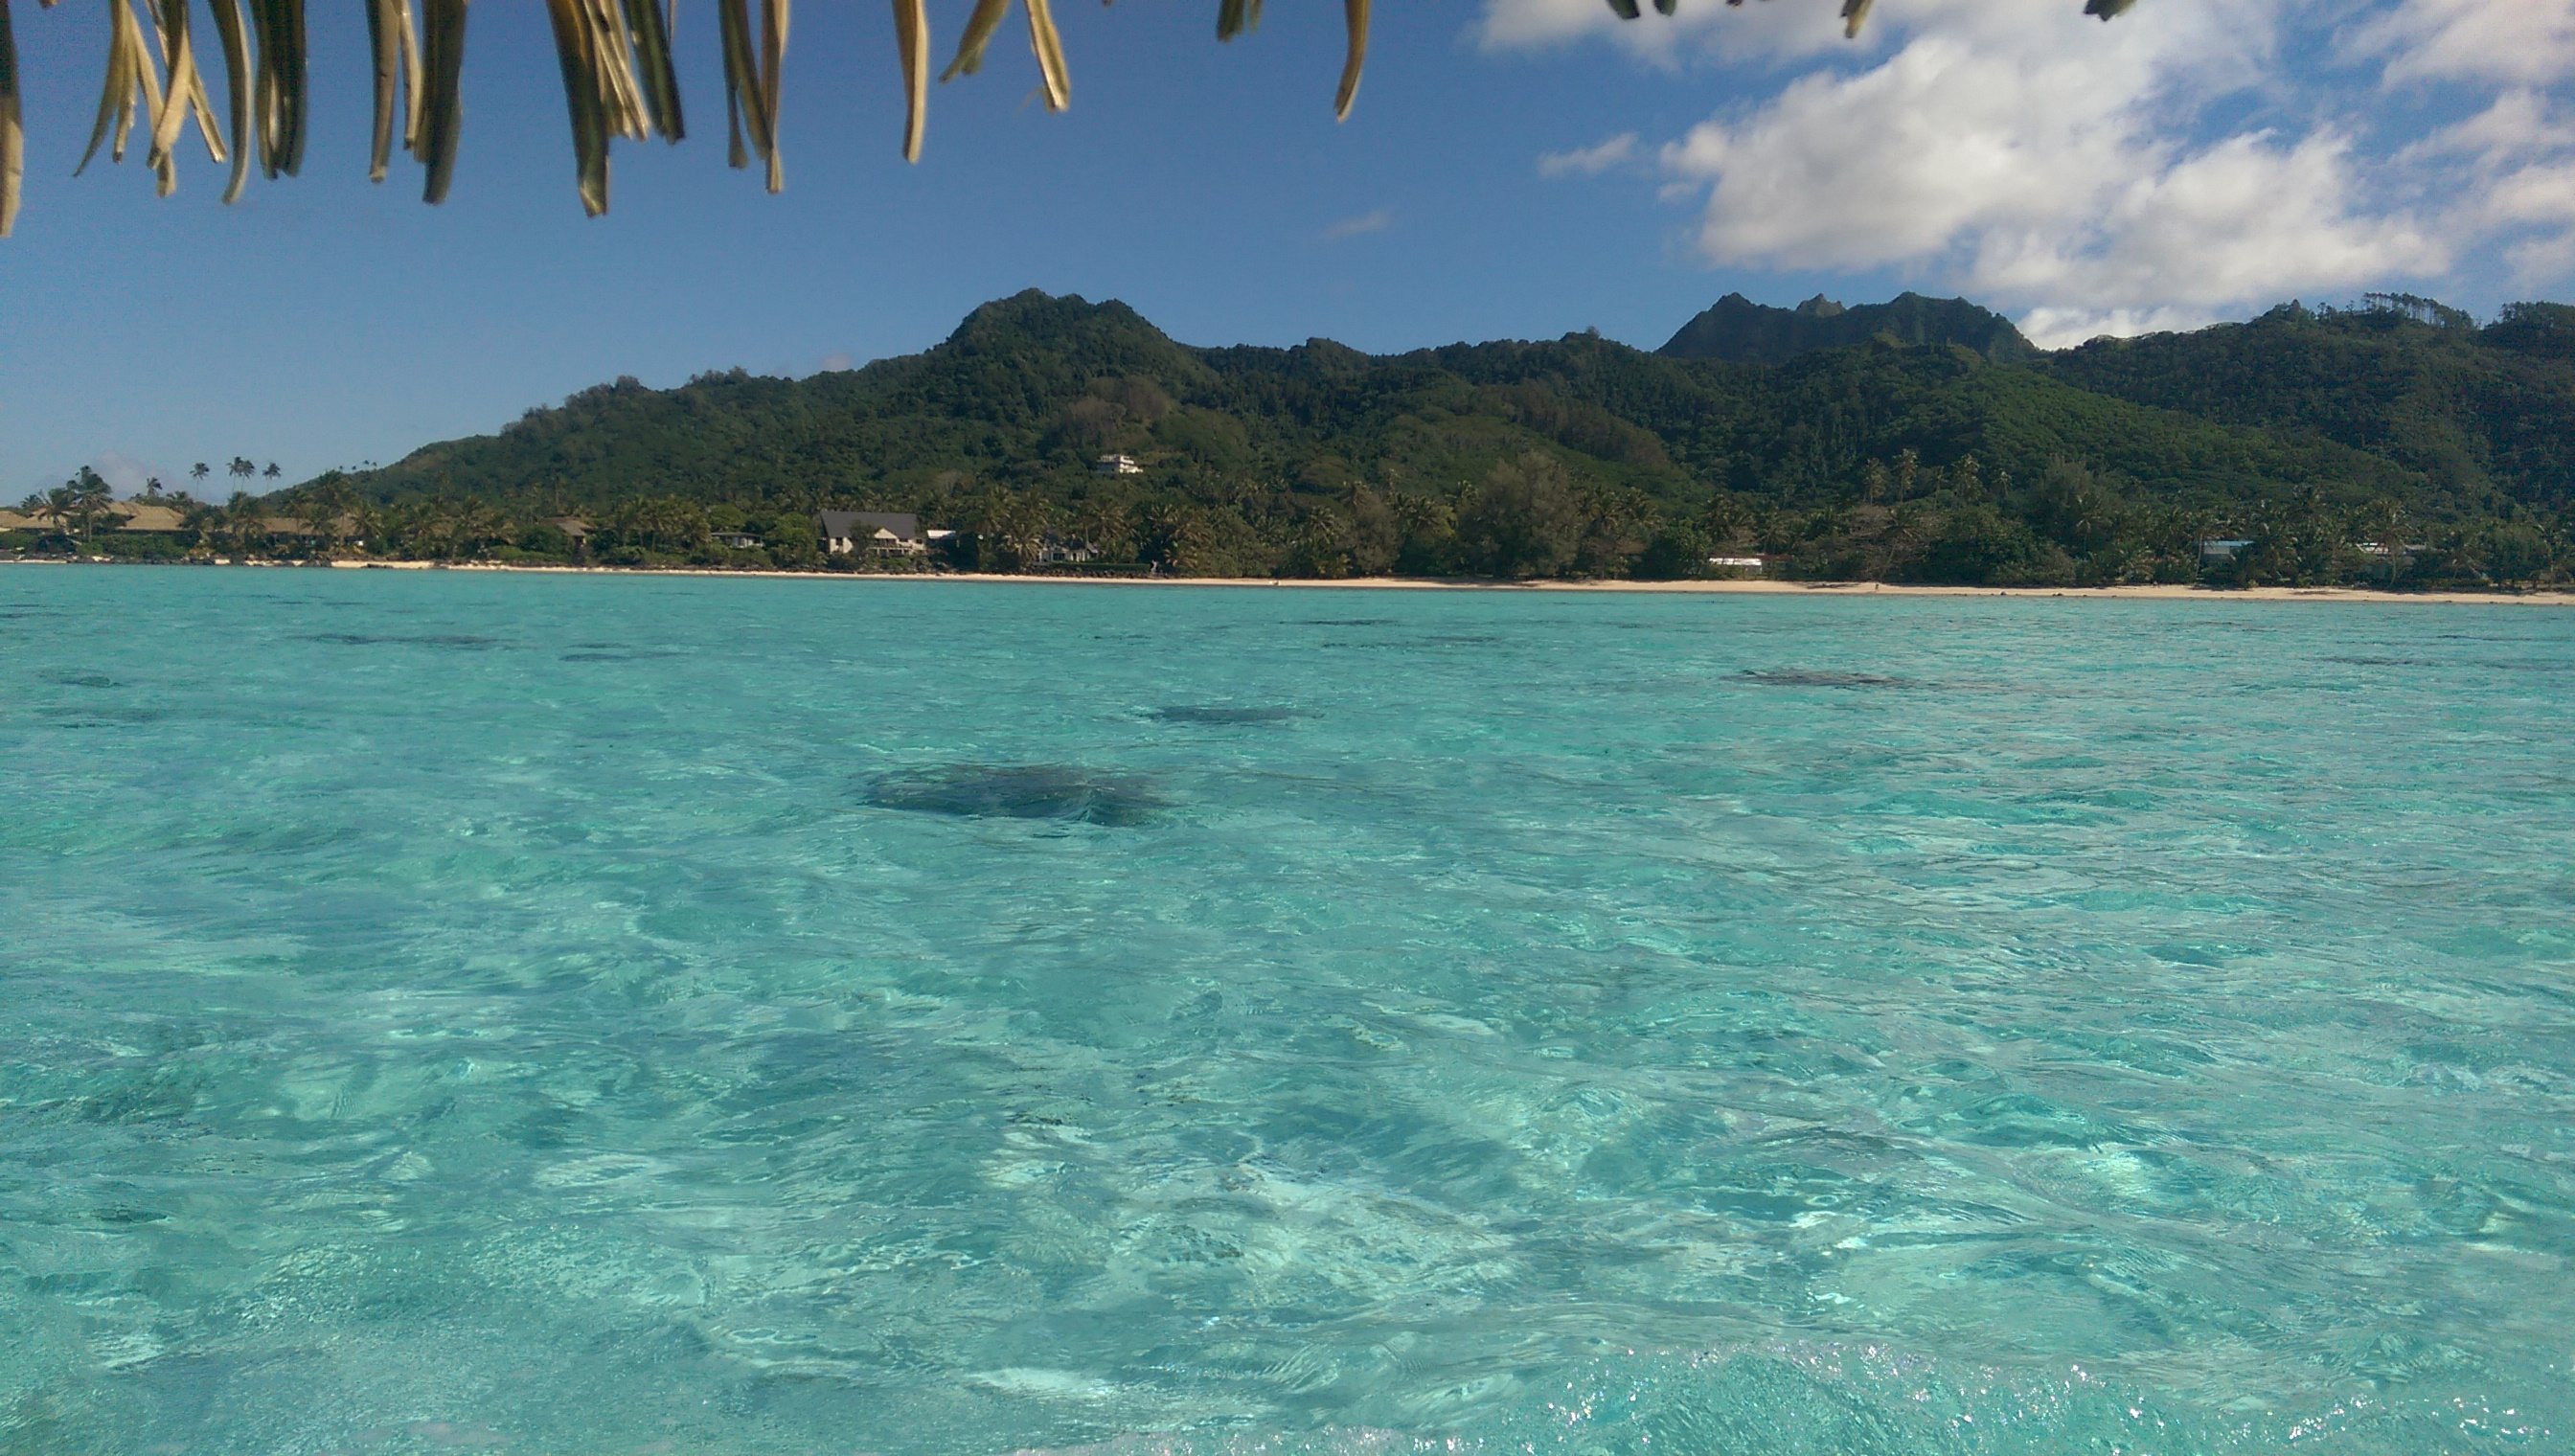 This is Raro: and how I learnt to not be an imperialist